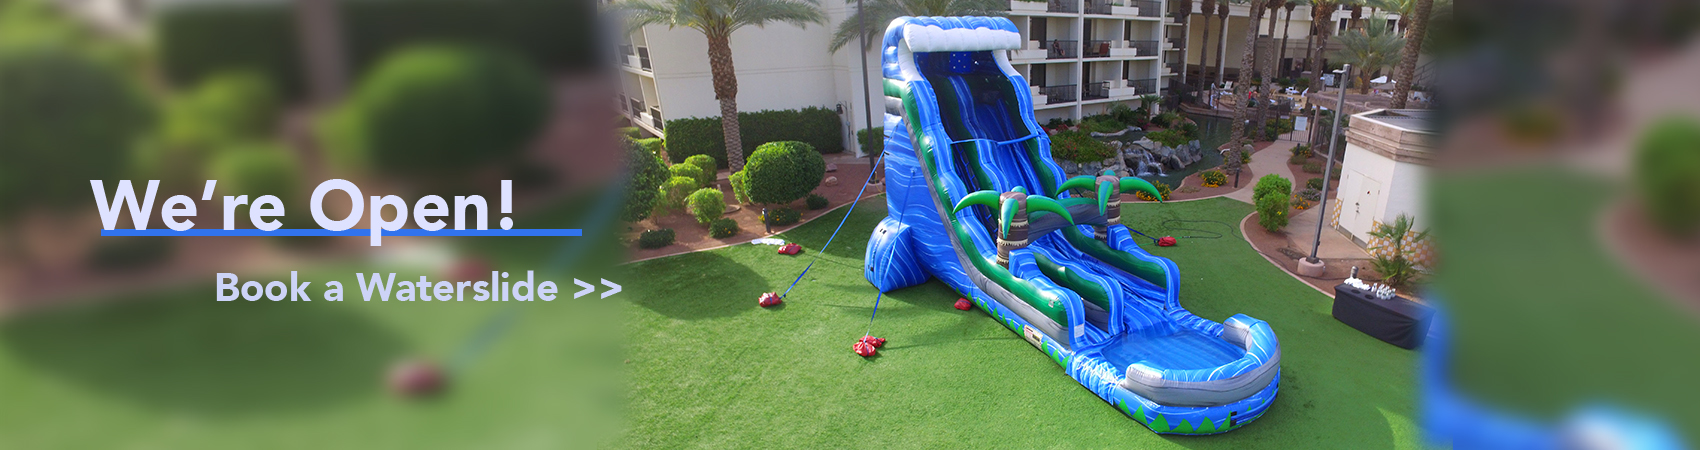 Waterslide Rentals Open